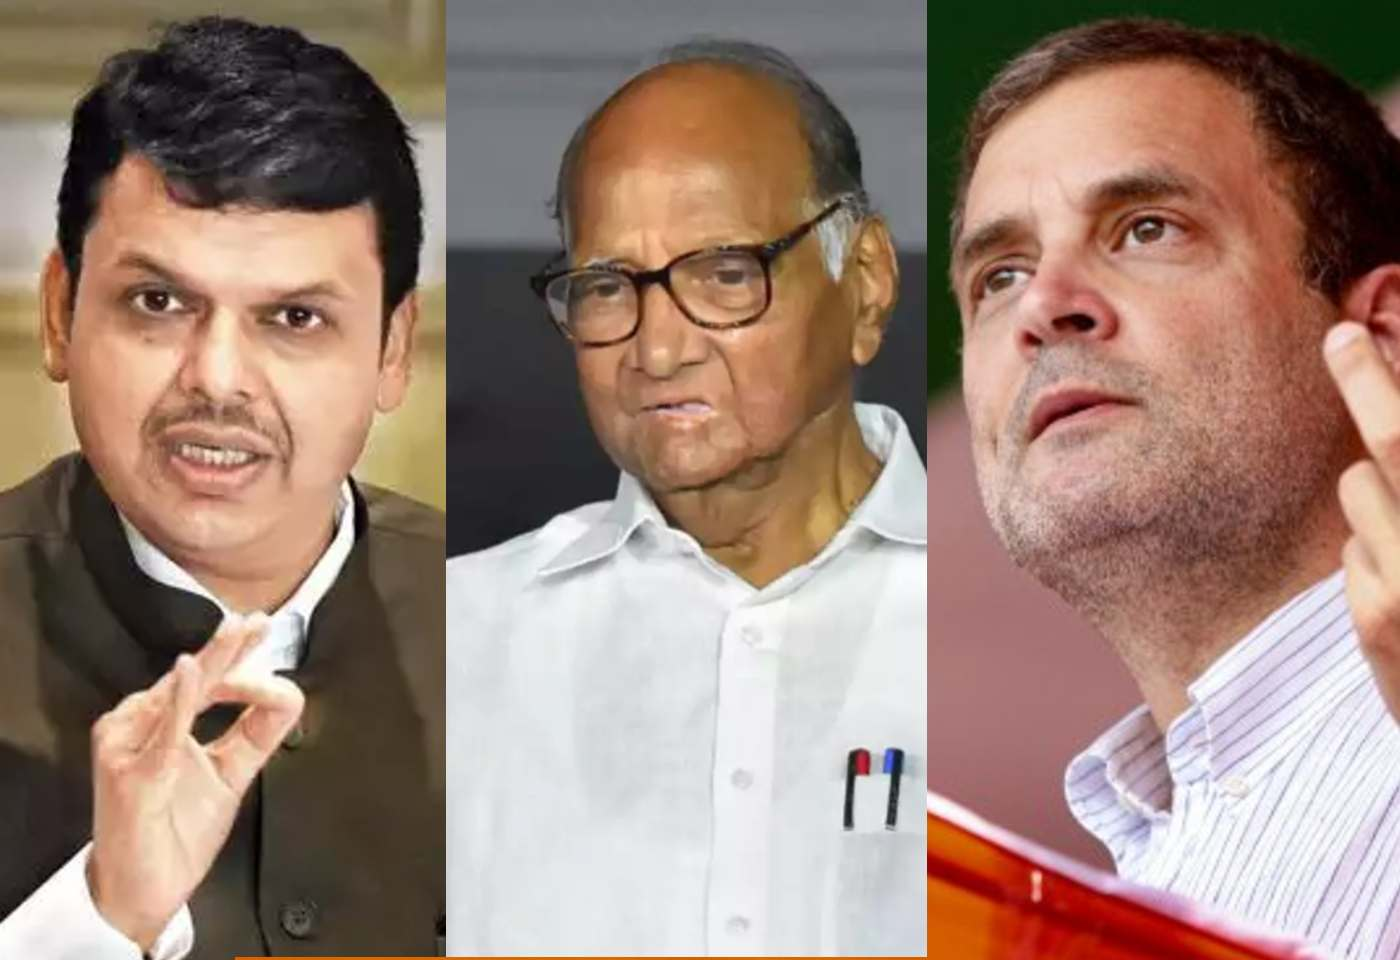 Sharad pawar Devendra Fadnavis Rahul Gandhi likely to Face Enquiry For Pandemic Help by Delhi Police After PIL In Delhi High Court